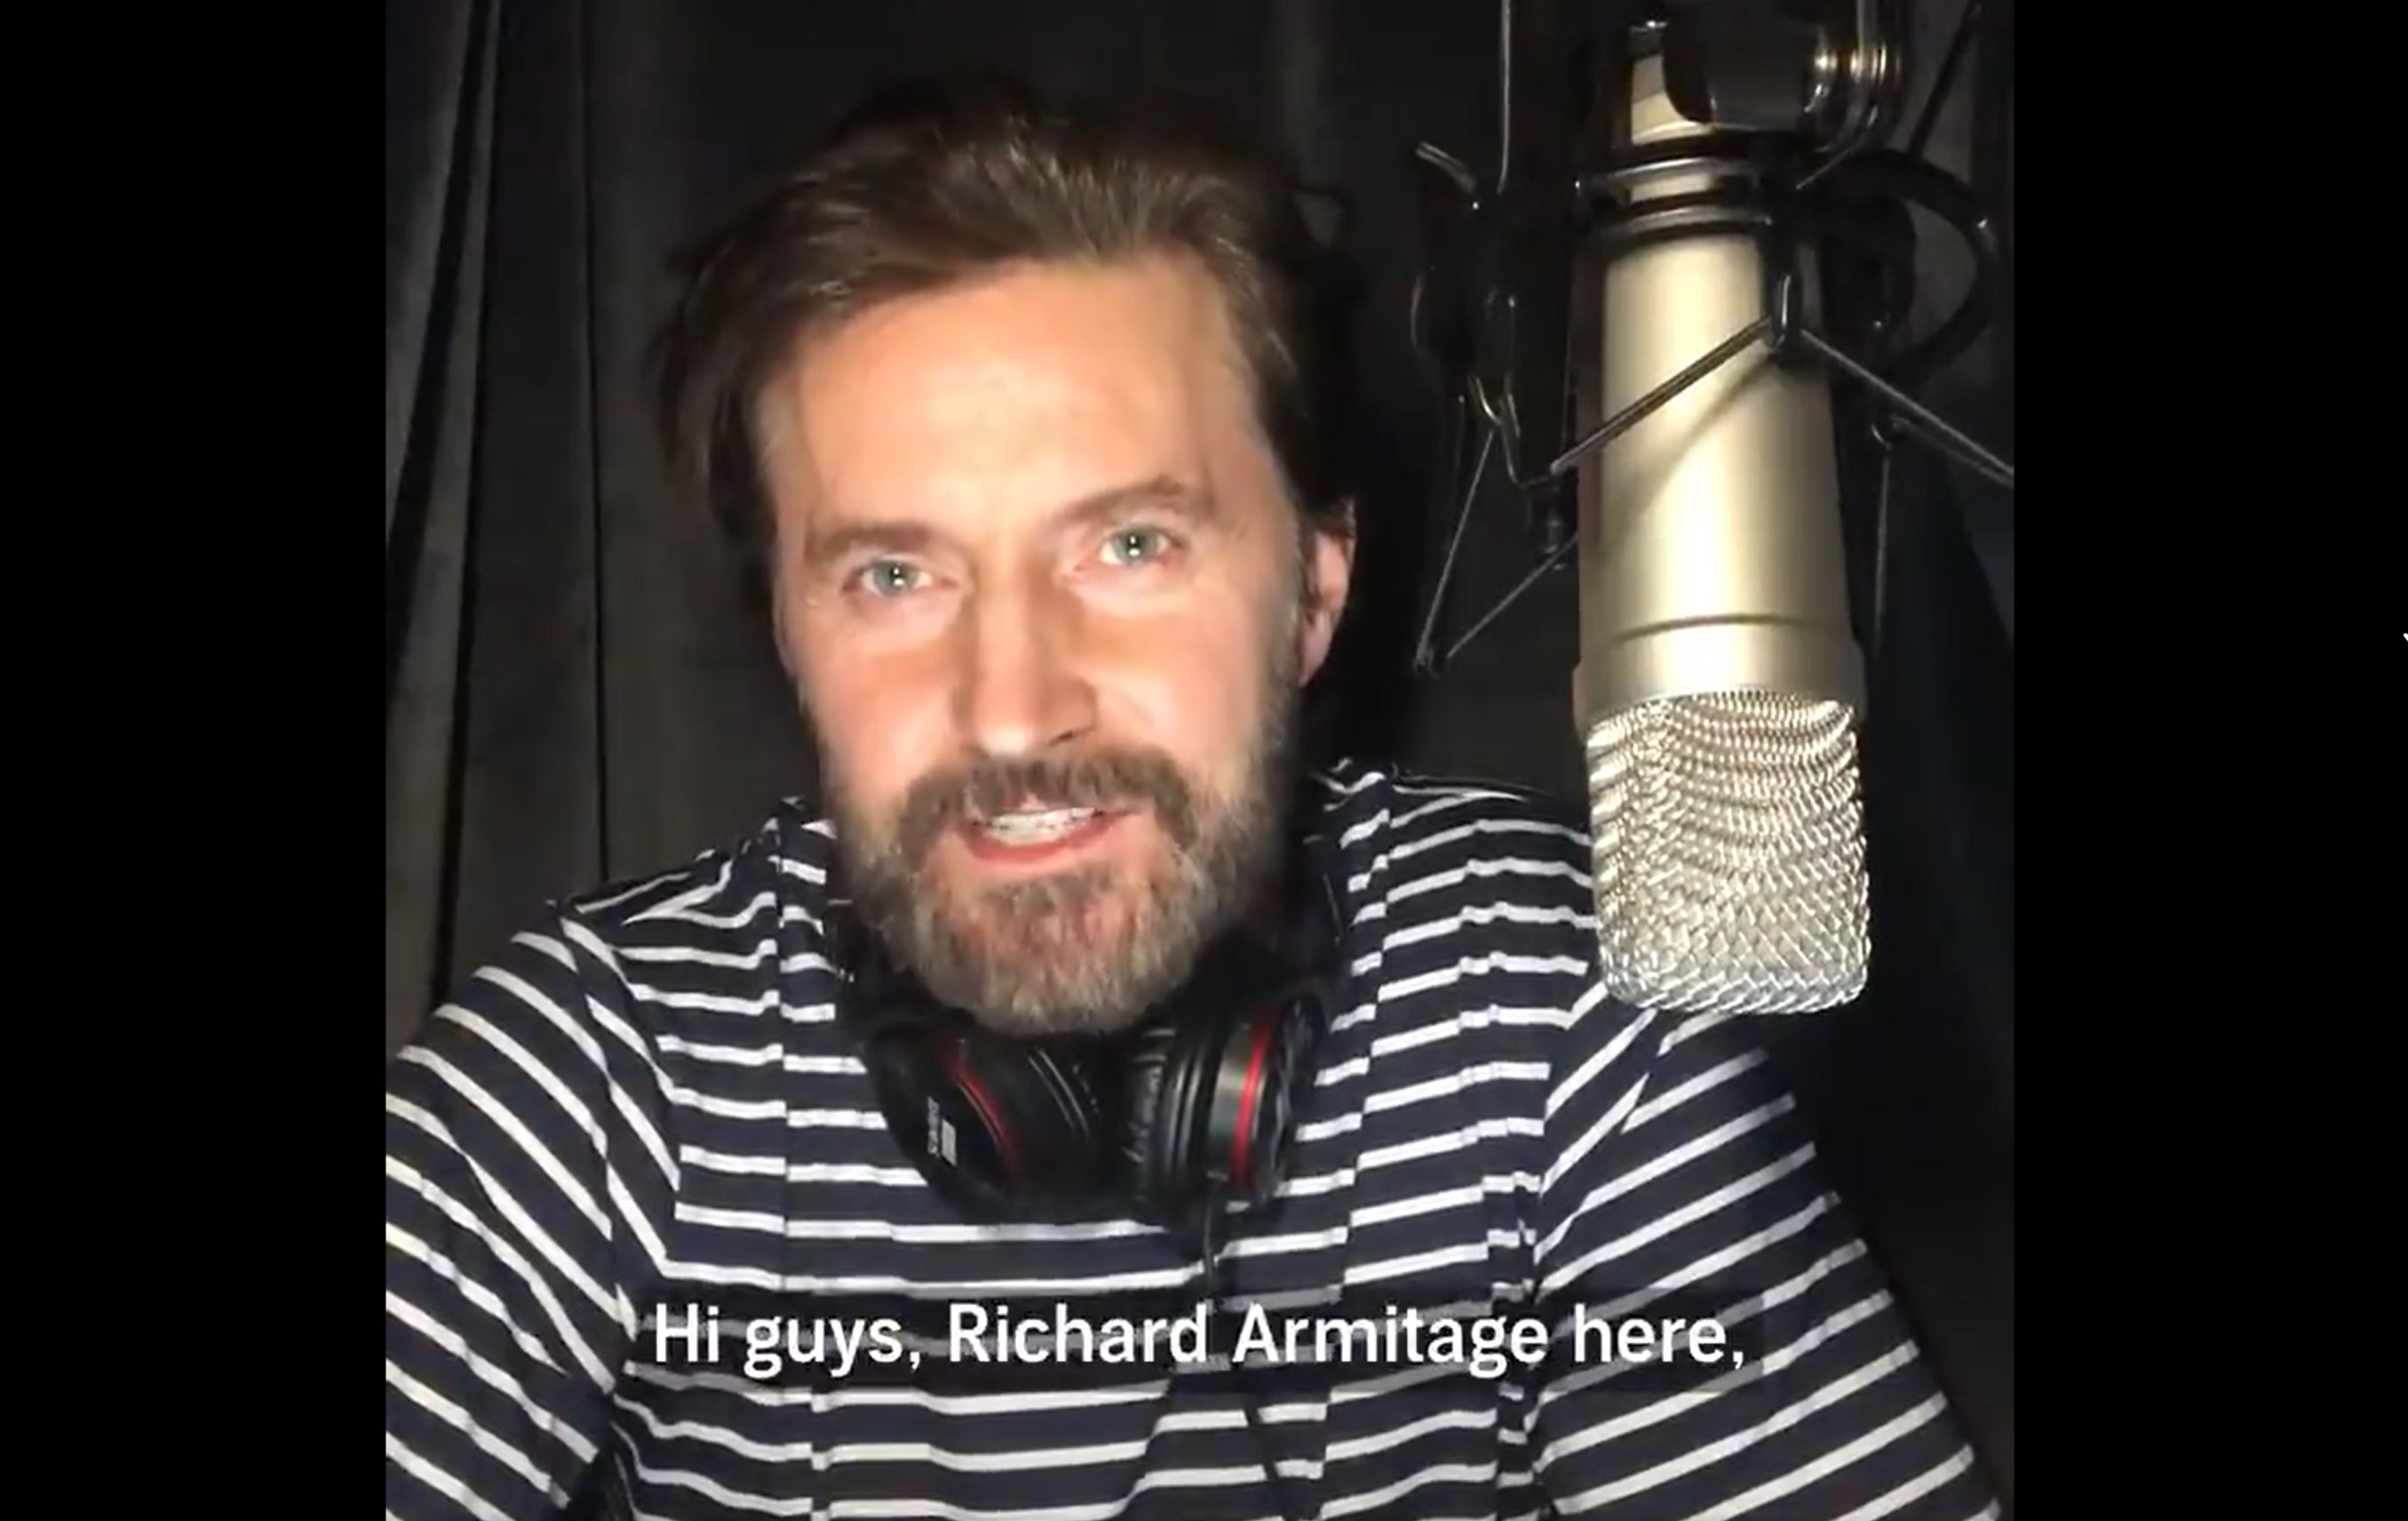 2020-05-06 10_35_20-Richard Armitage op Twitter_ _I've been hard at work recording two beloved Agath